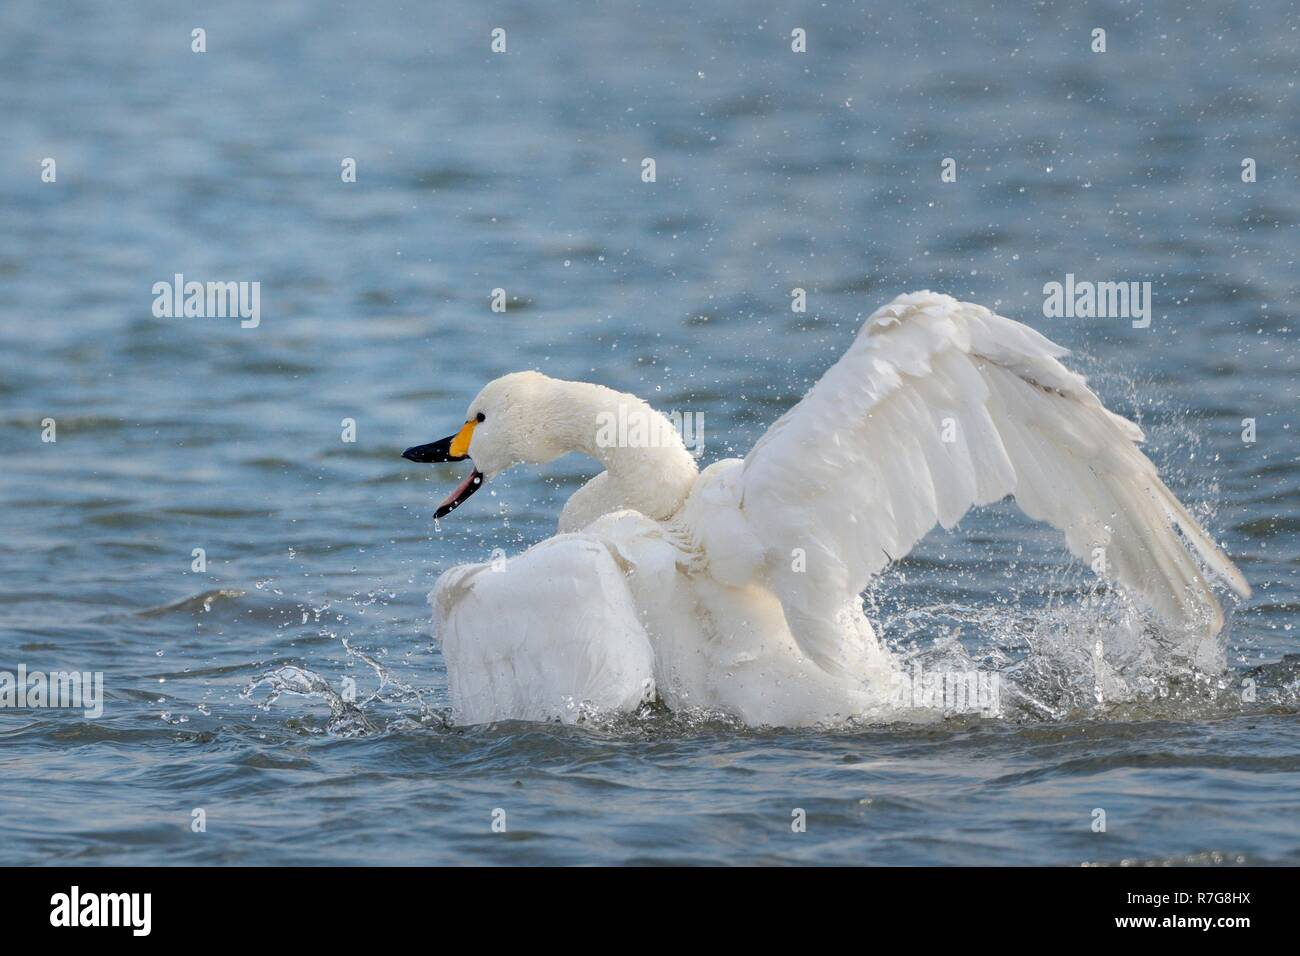 Bewick's swan (Cygnus columbianus bewicki) bathing and flapping its wings on the surface of a freshwater lake, Gloucestershire, UK, February - Stock Image